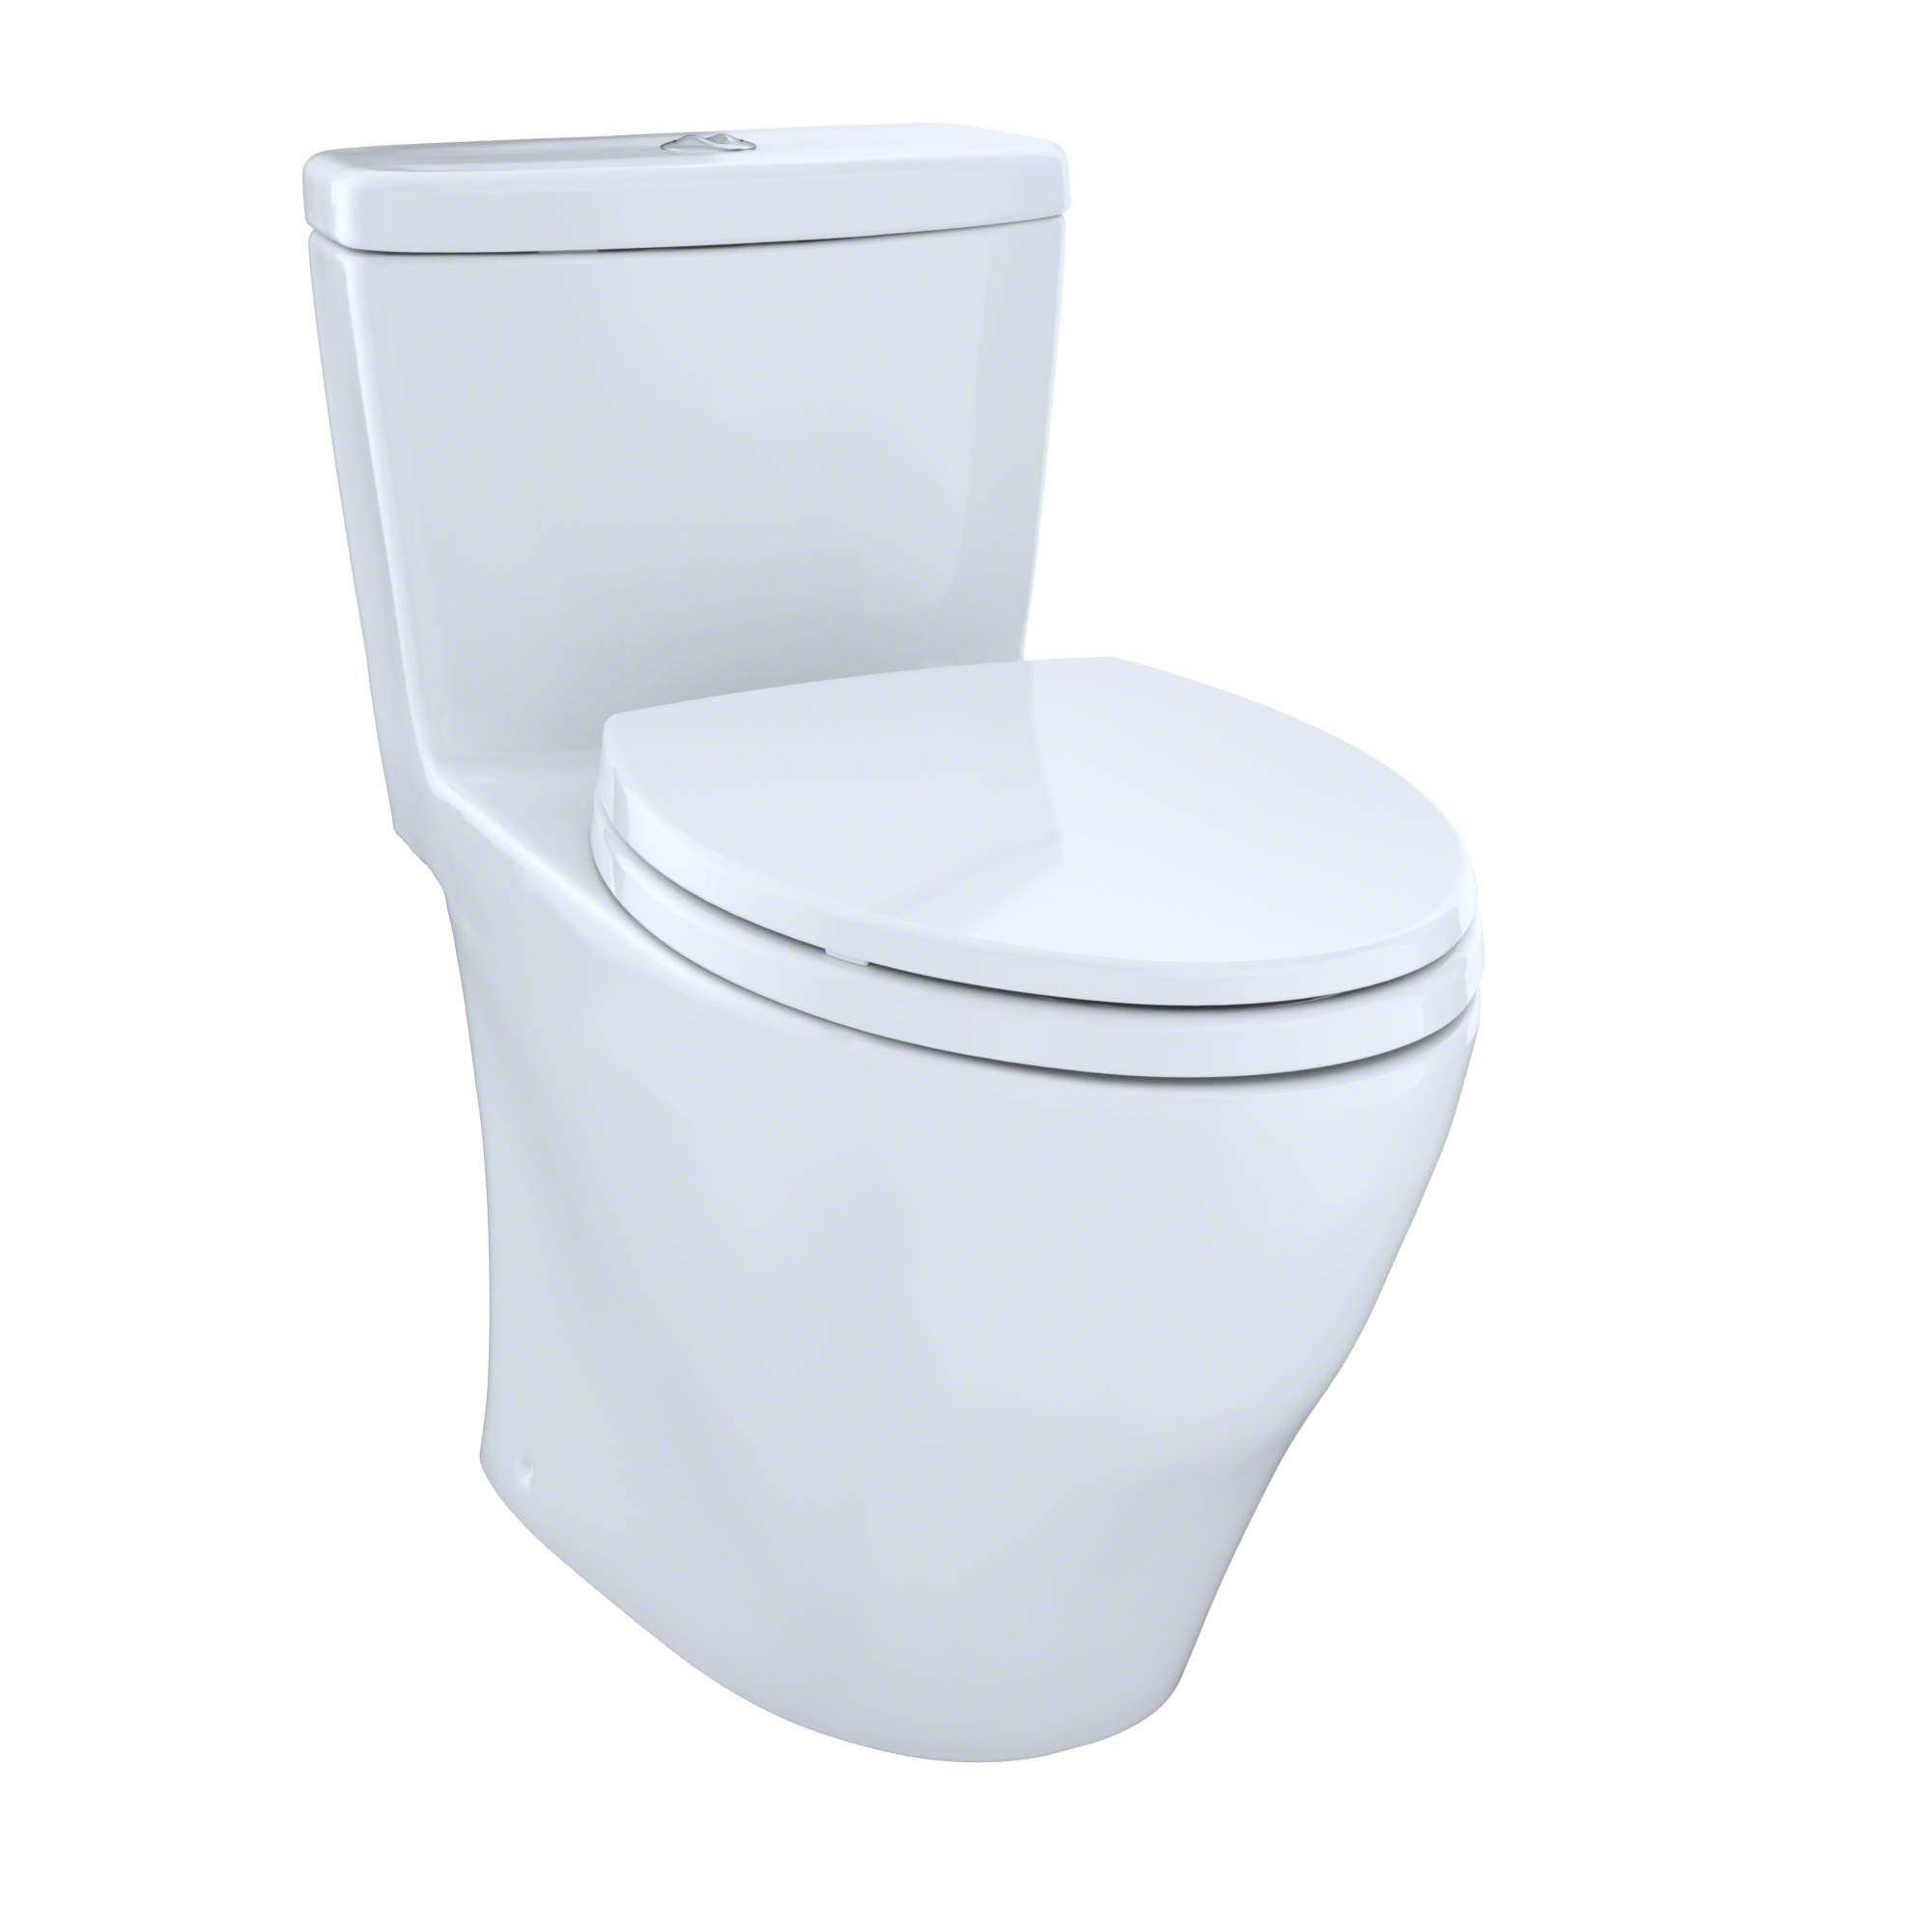 Toto Aquia Elongated One Piece Toilet MS654114MF#01 Cotton White ...